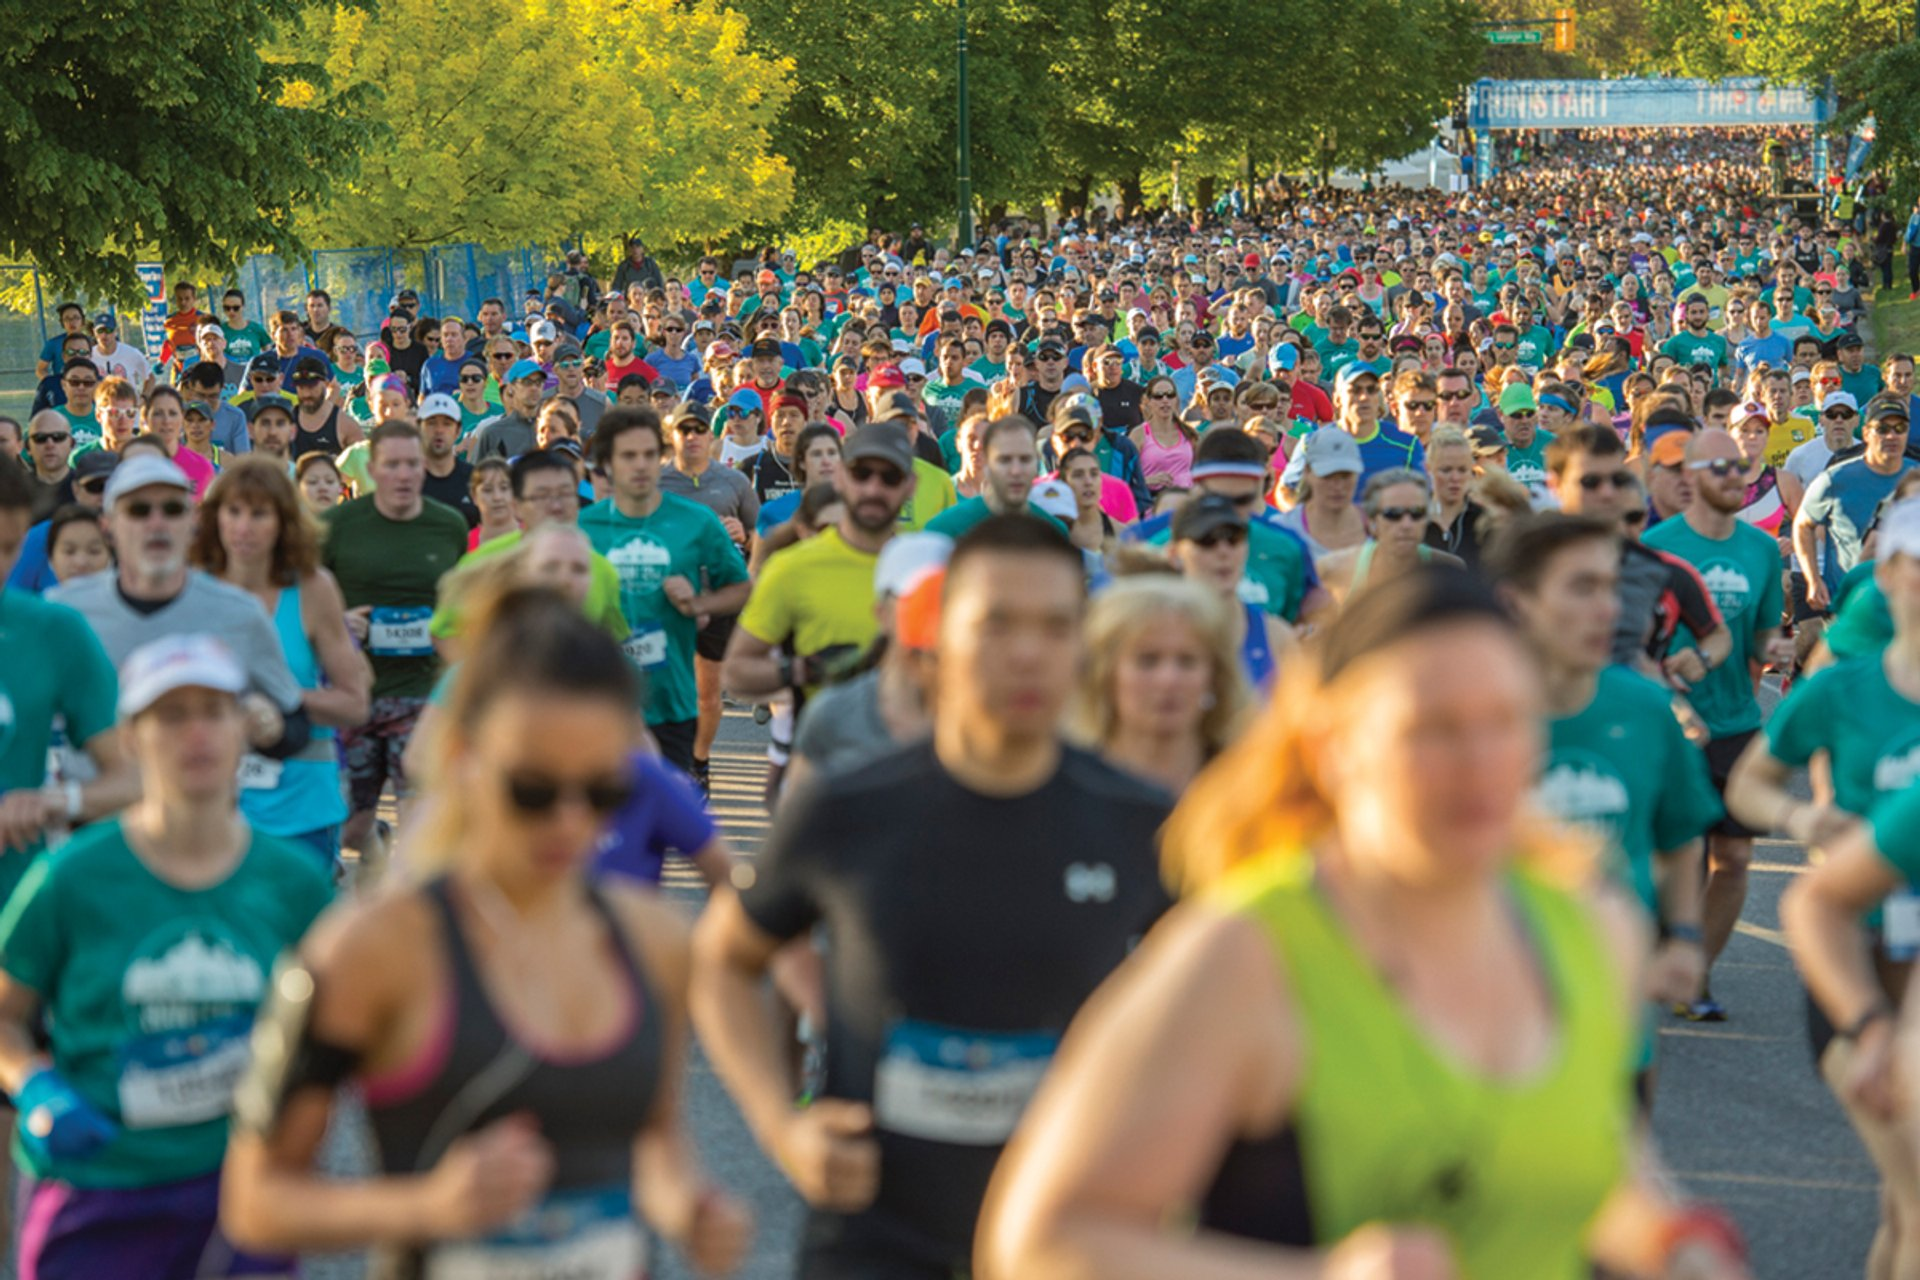 Vancouver Marathon in Vancouver 2019 - Best Time